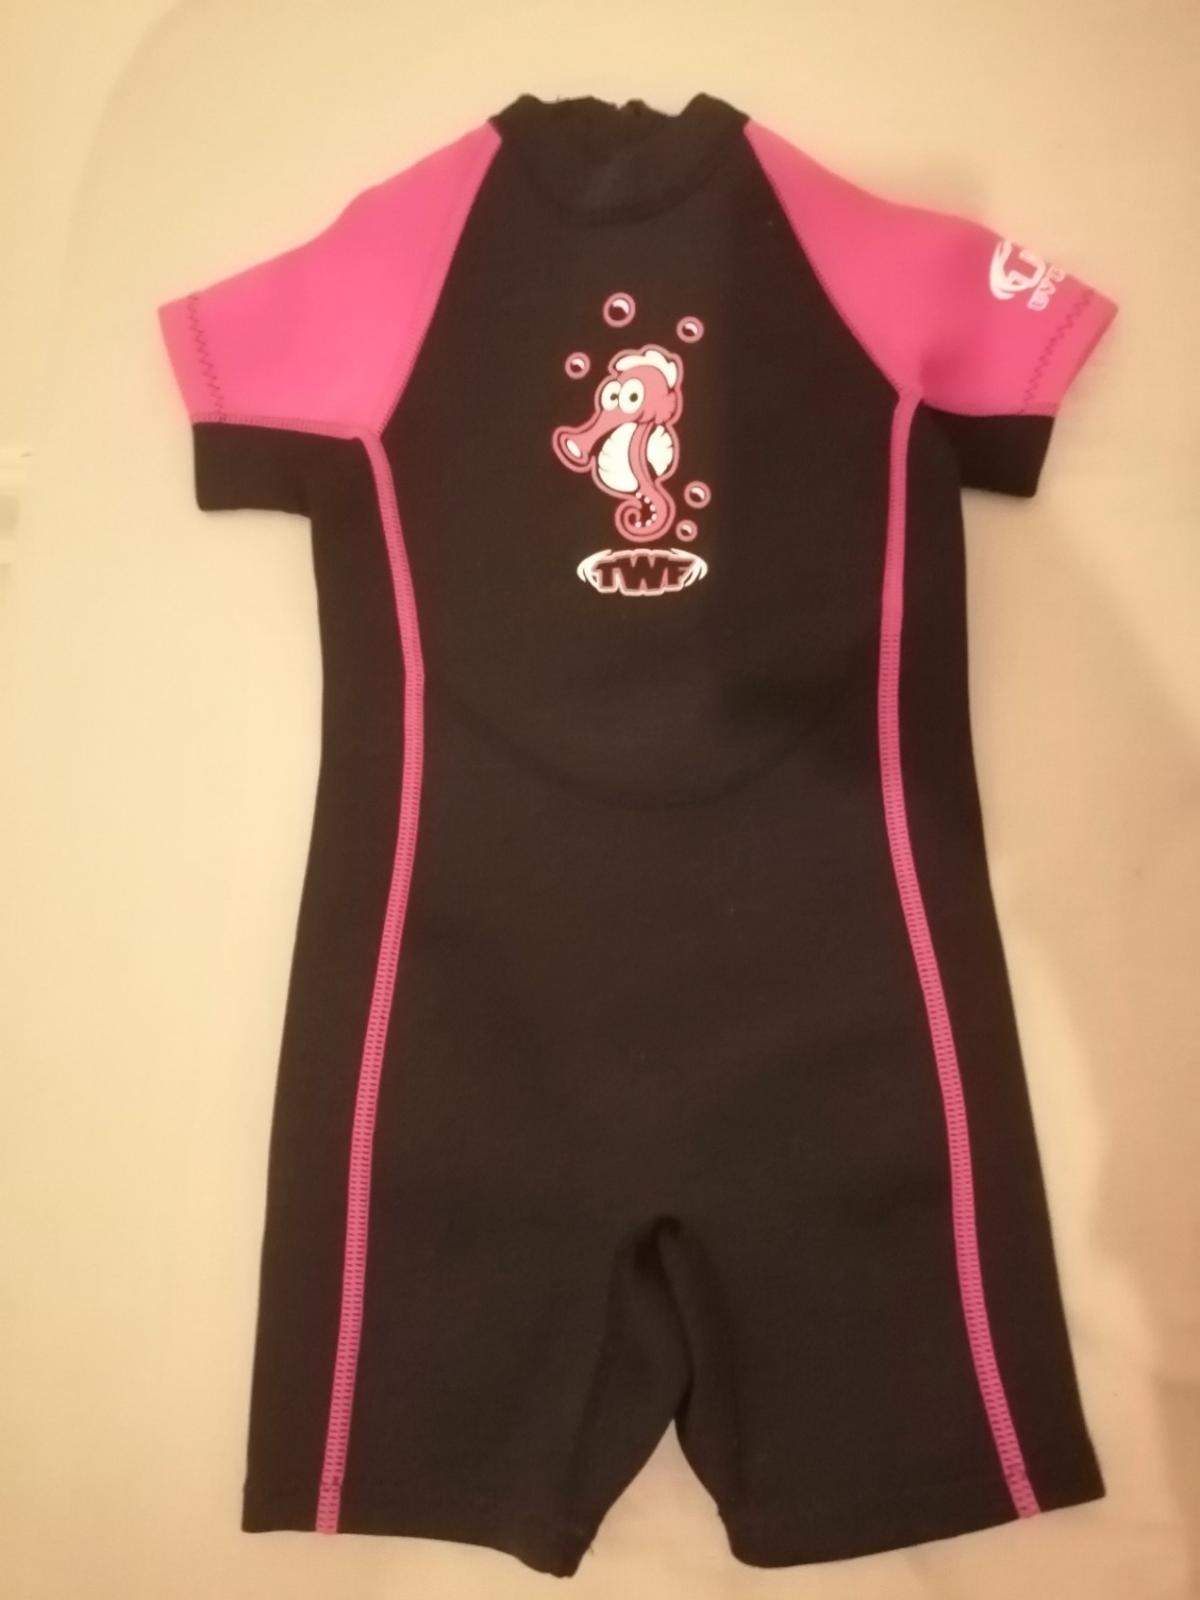 BRAND NEW! NEVER BEEN WORN SHOULD FIT 2-3 YRS